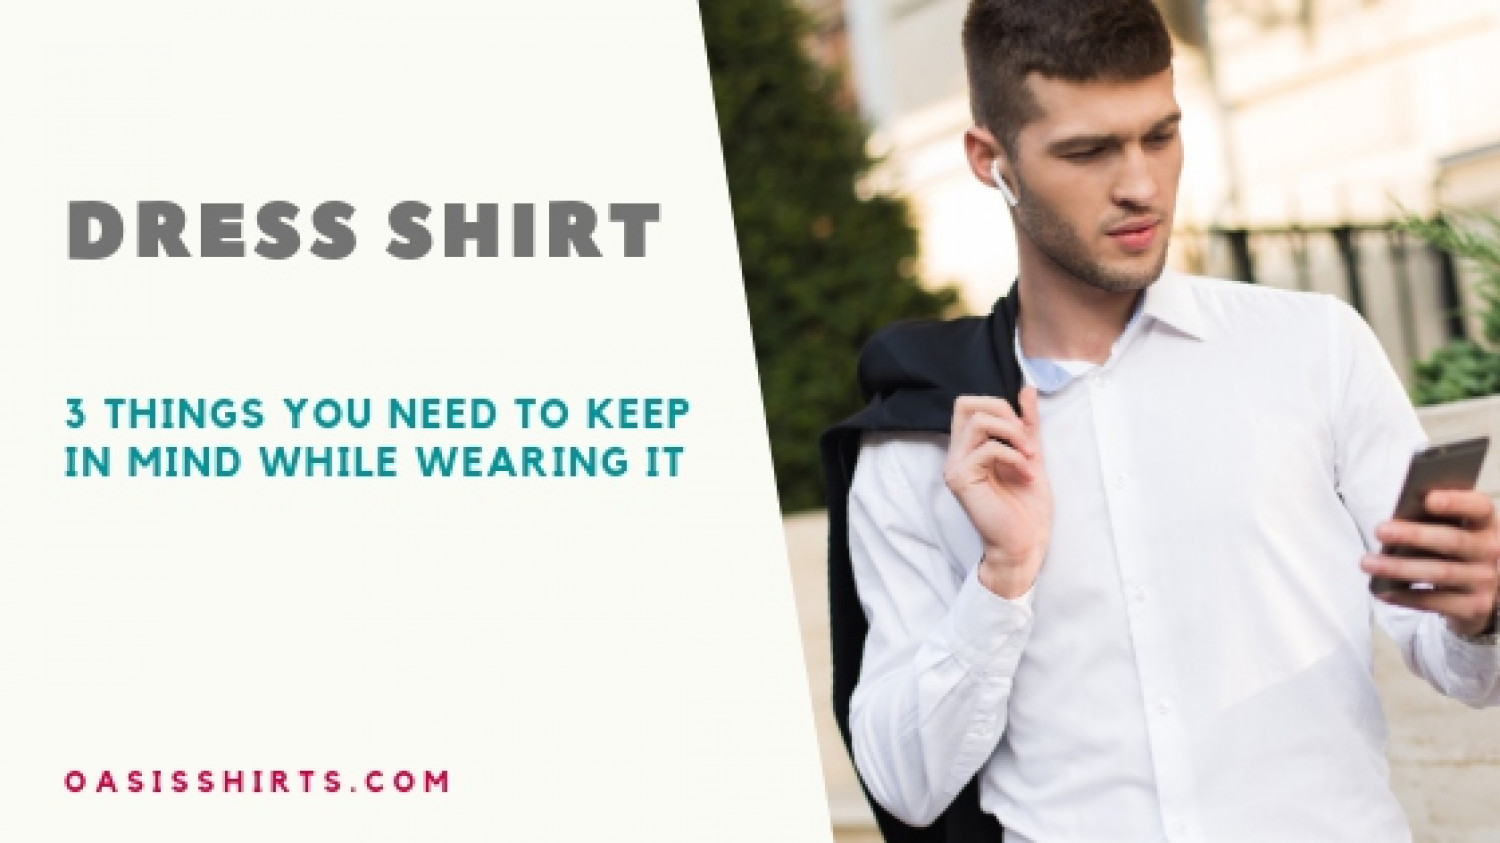 3 Things You Need To Keep In Mind While Wearing A Dress Shirt!